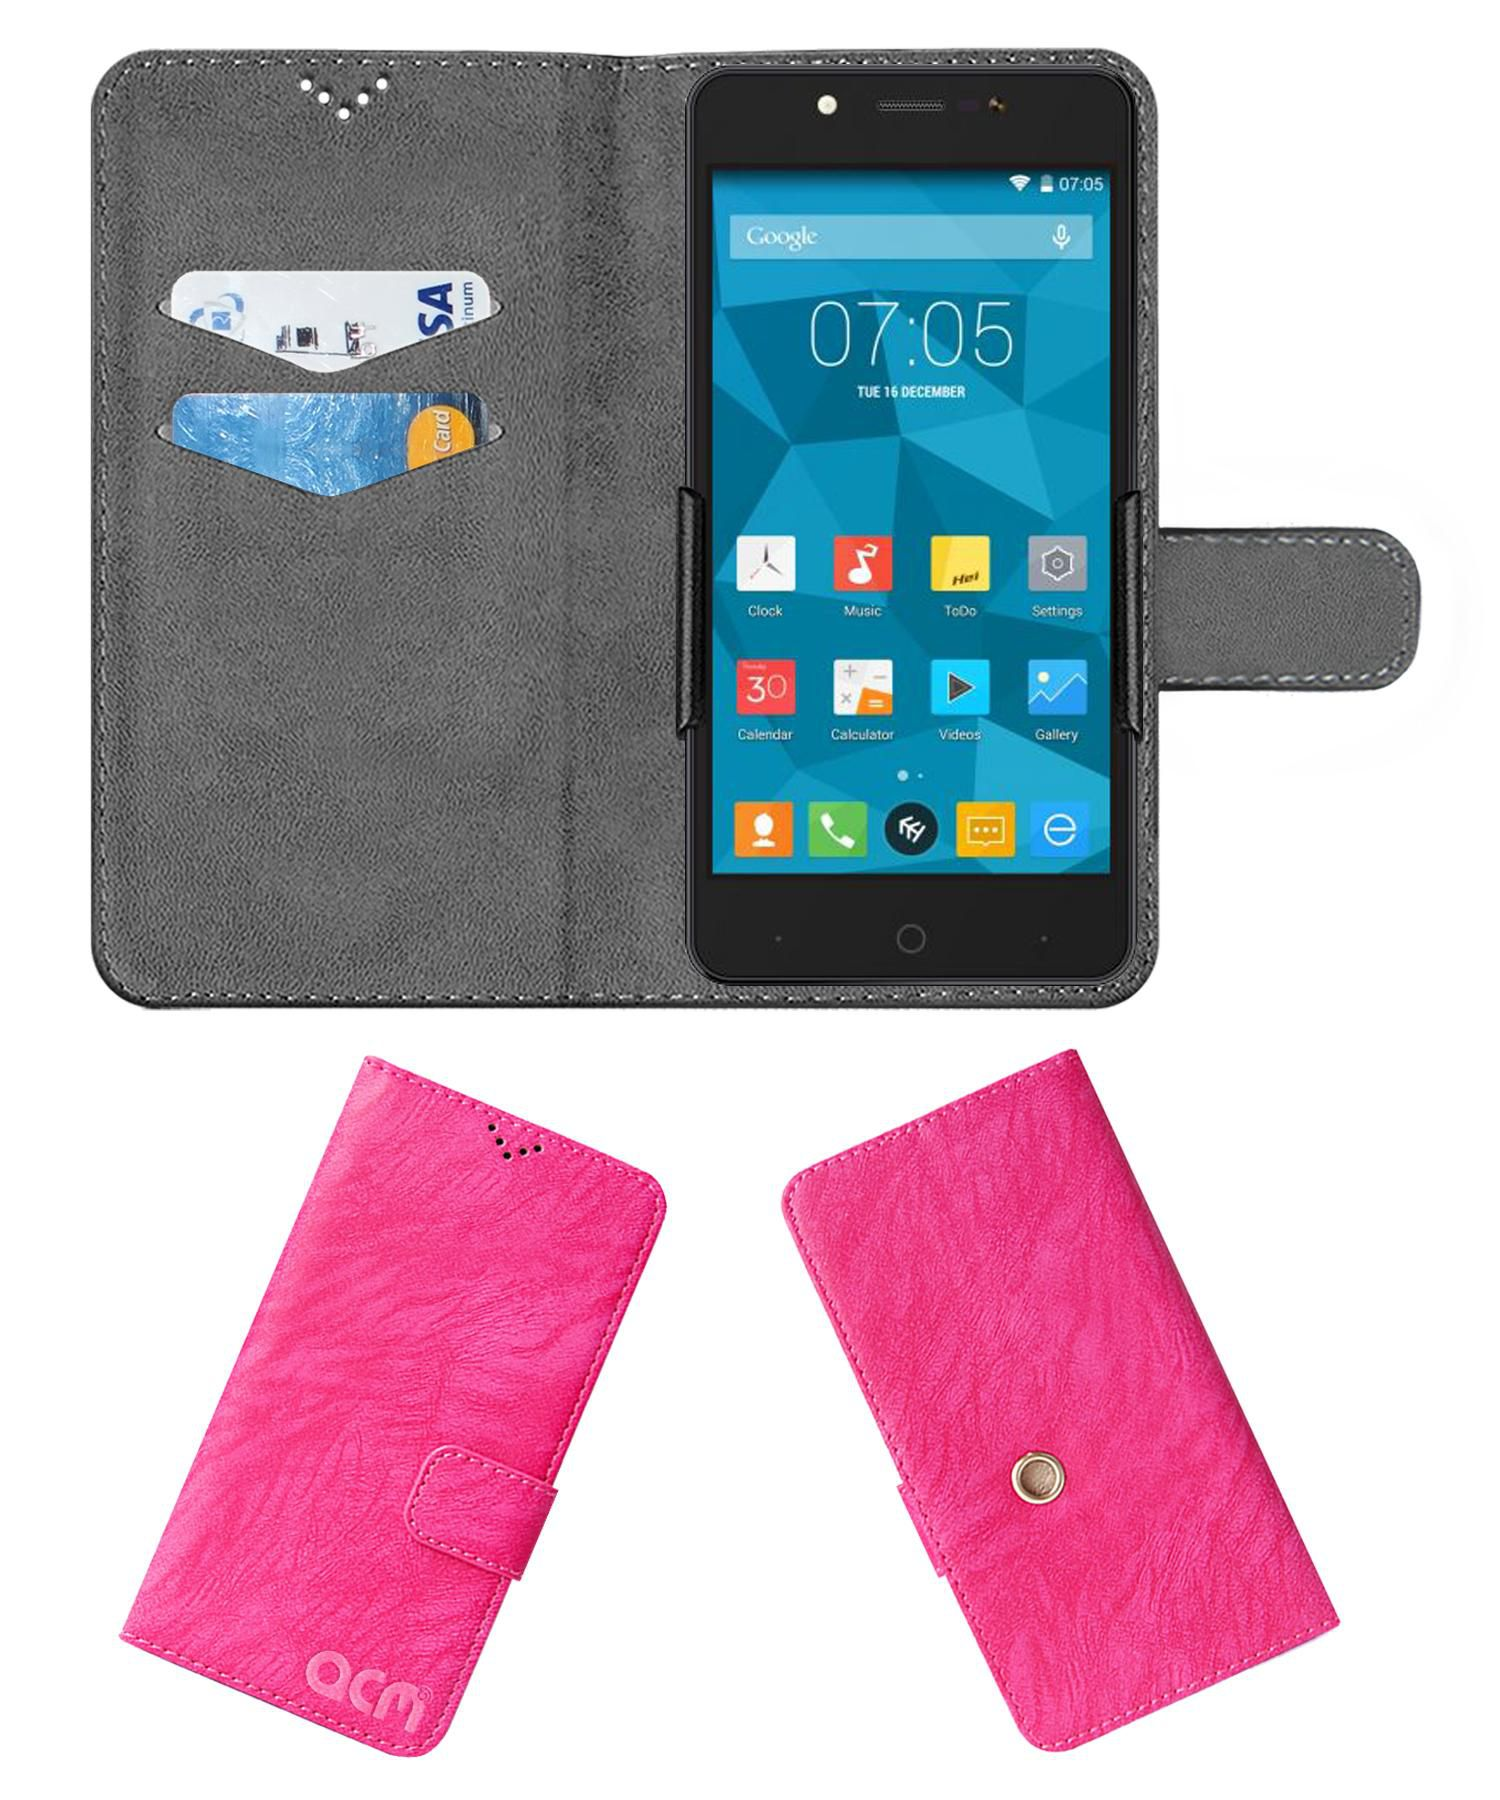 ZOPO COLOR E1 Flip Cover by ACM - Pink Clip holder to hold your mobile securely